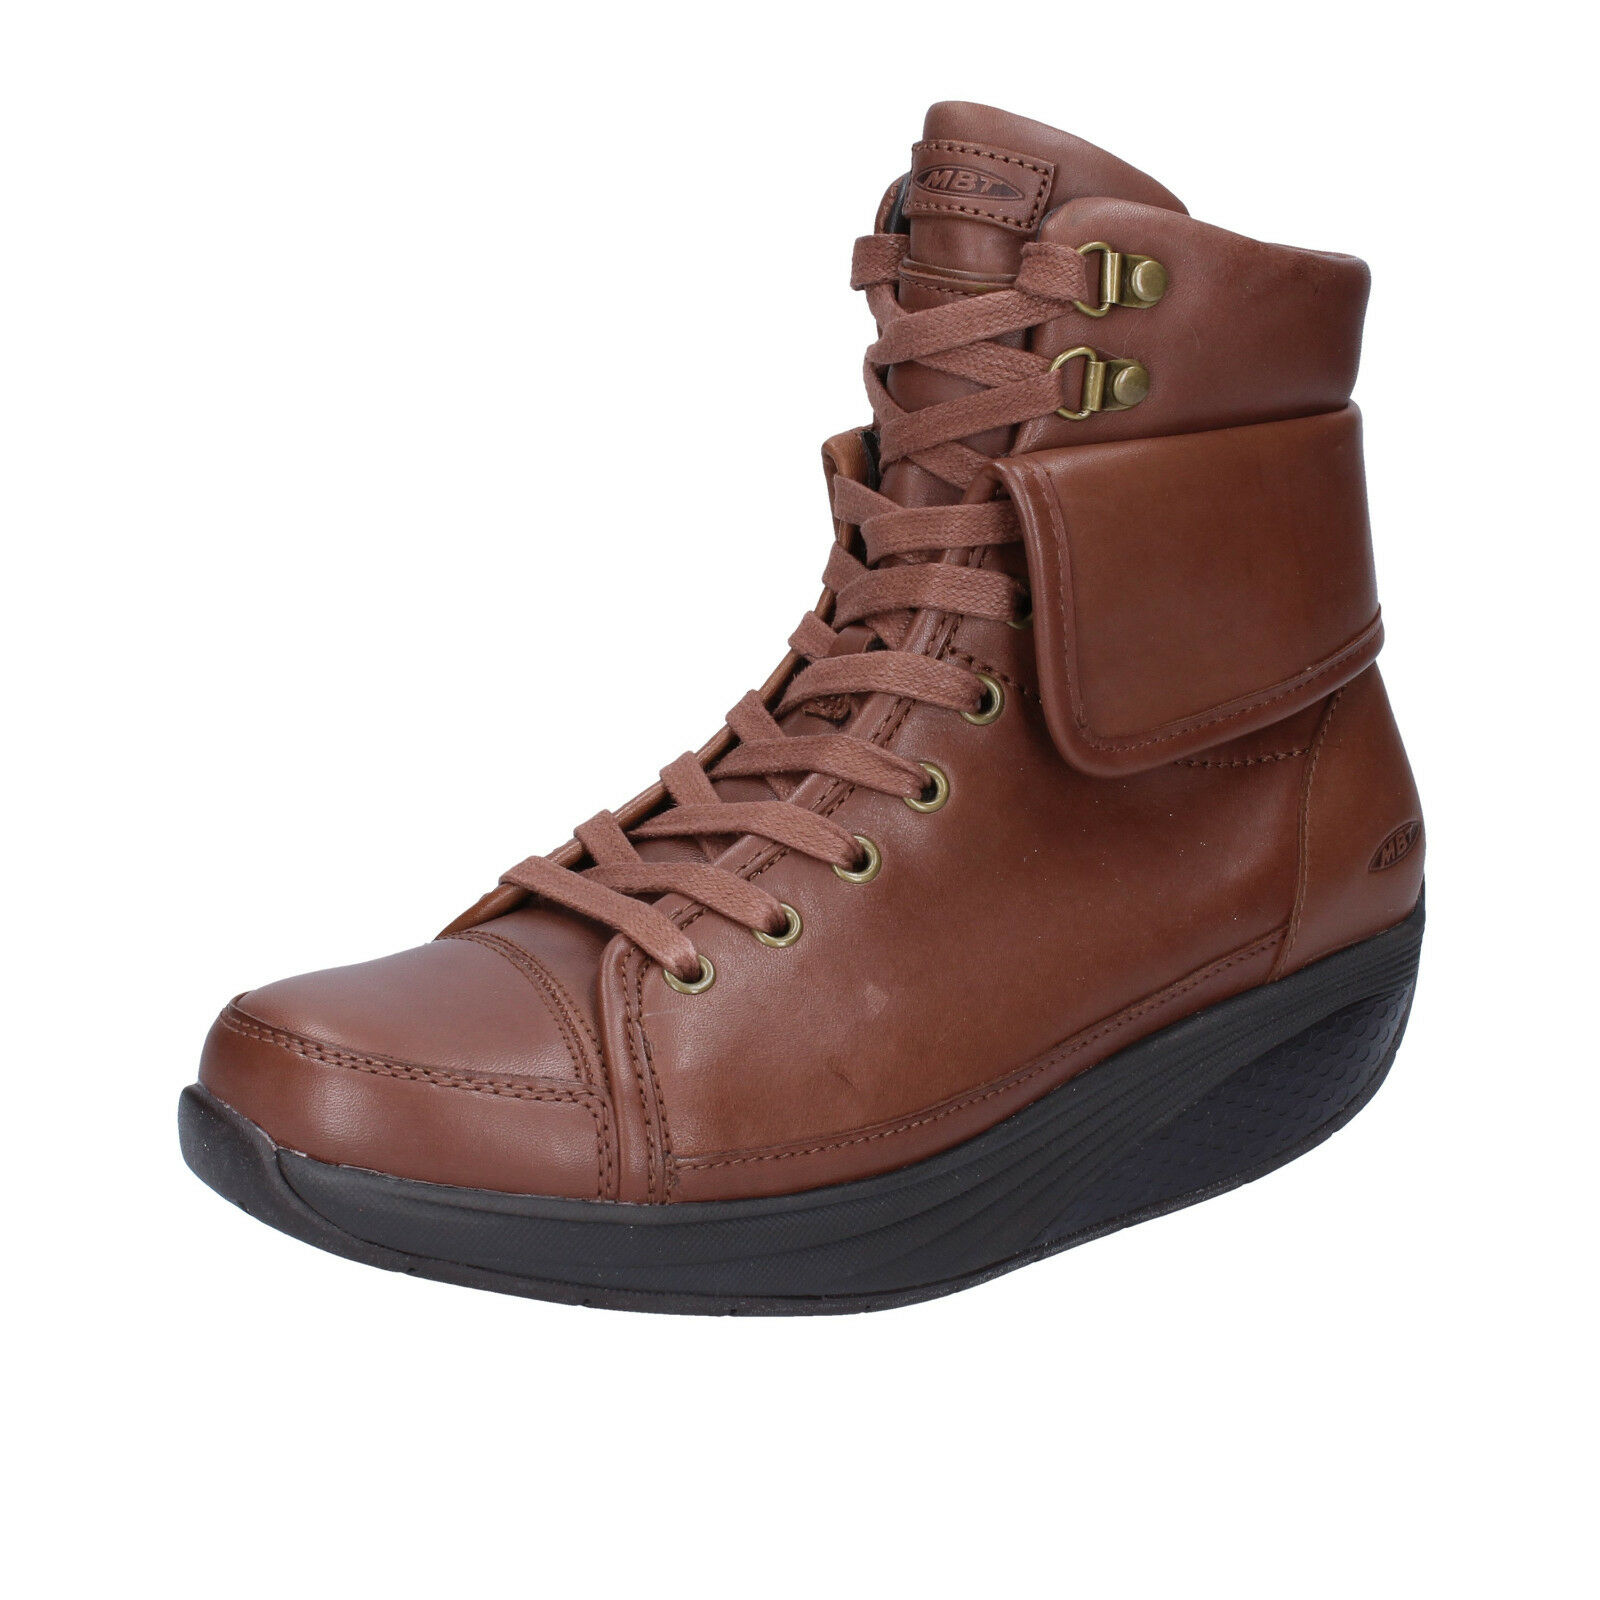 Women's shoes MBT 6   6,5 (EU 37) ankle boots brown leather BT205-37